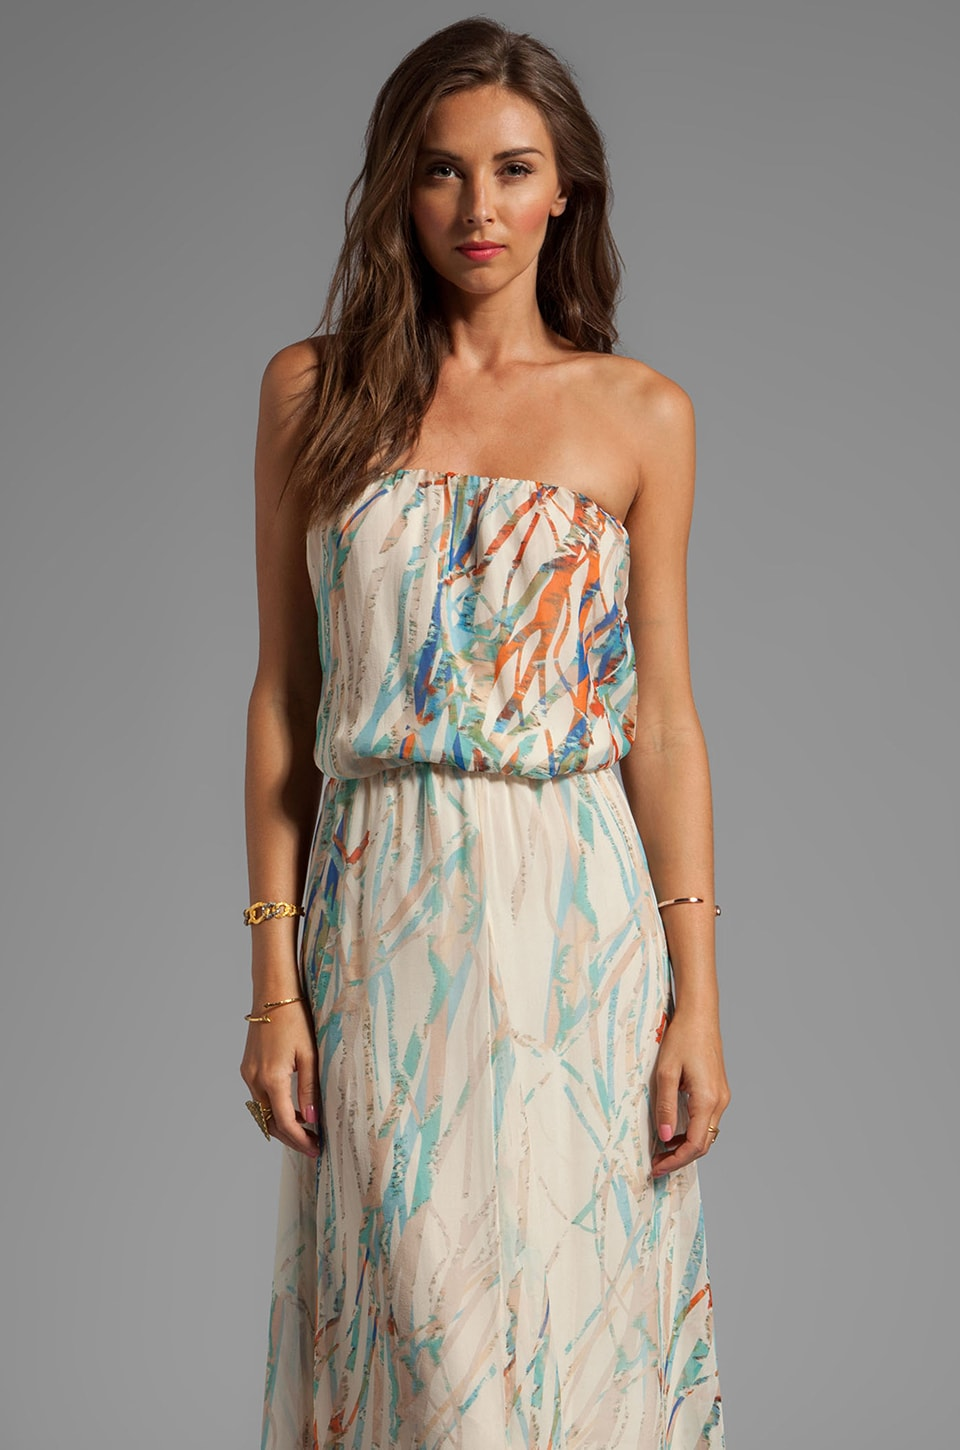 Gypsy 05 Cannes Seismograph Silk GGT Tube Maxi Dress in Moonbeam